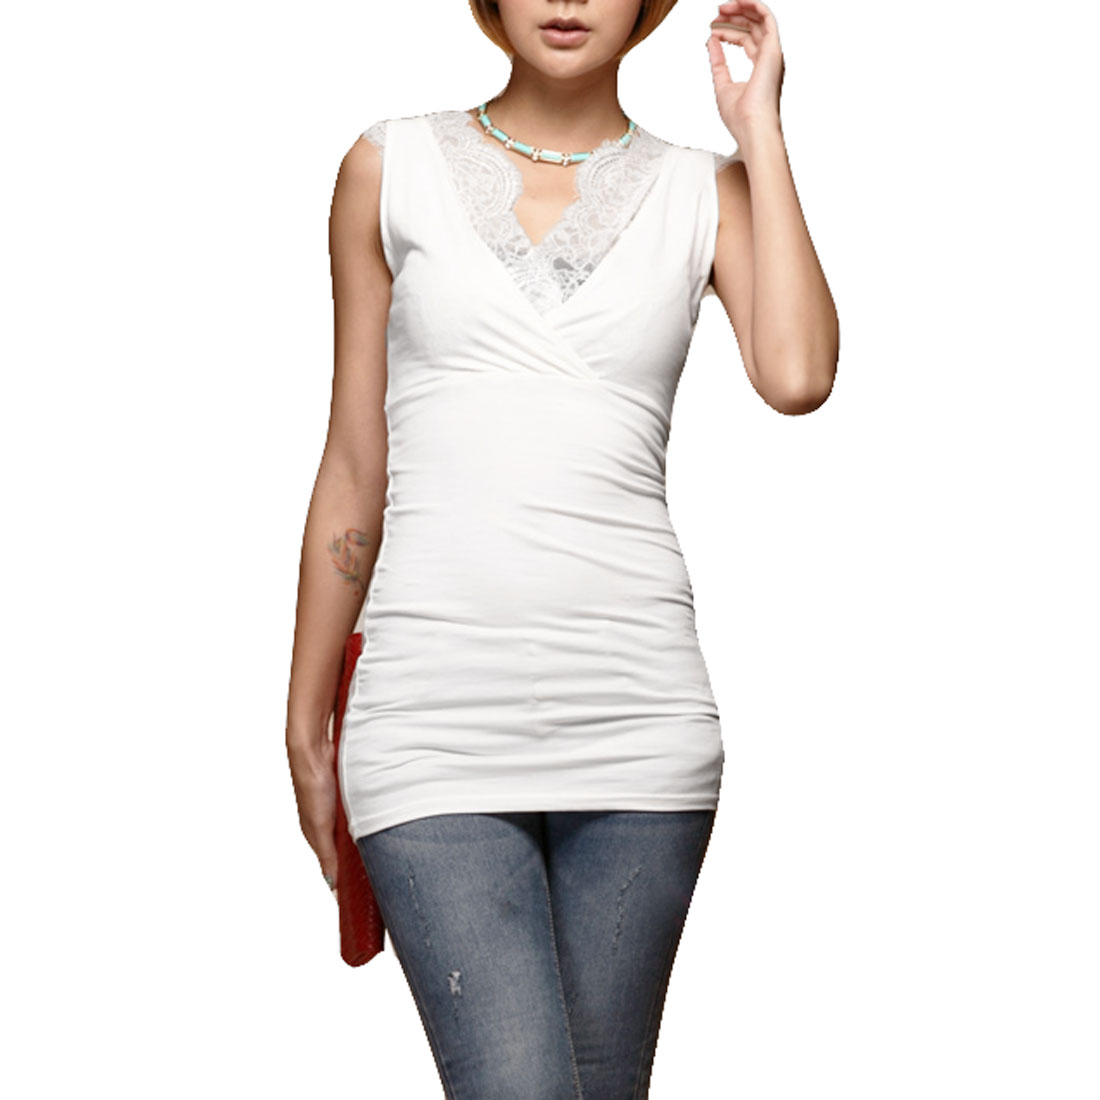 Women Summer Charming Sleeveless Double V Neck Top Vest White XS